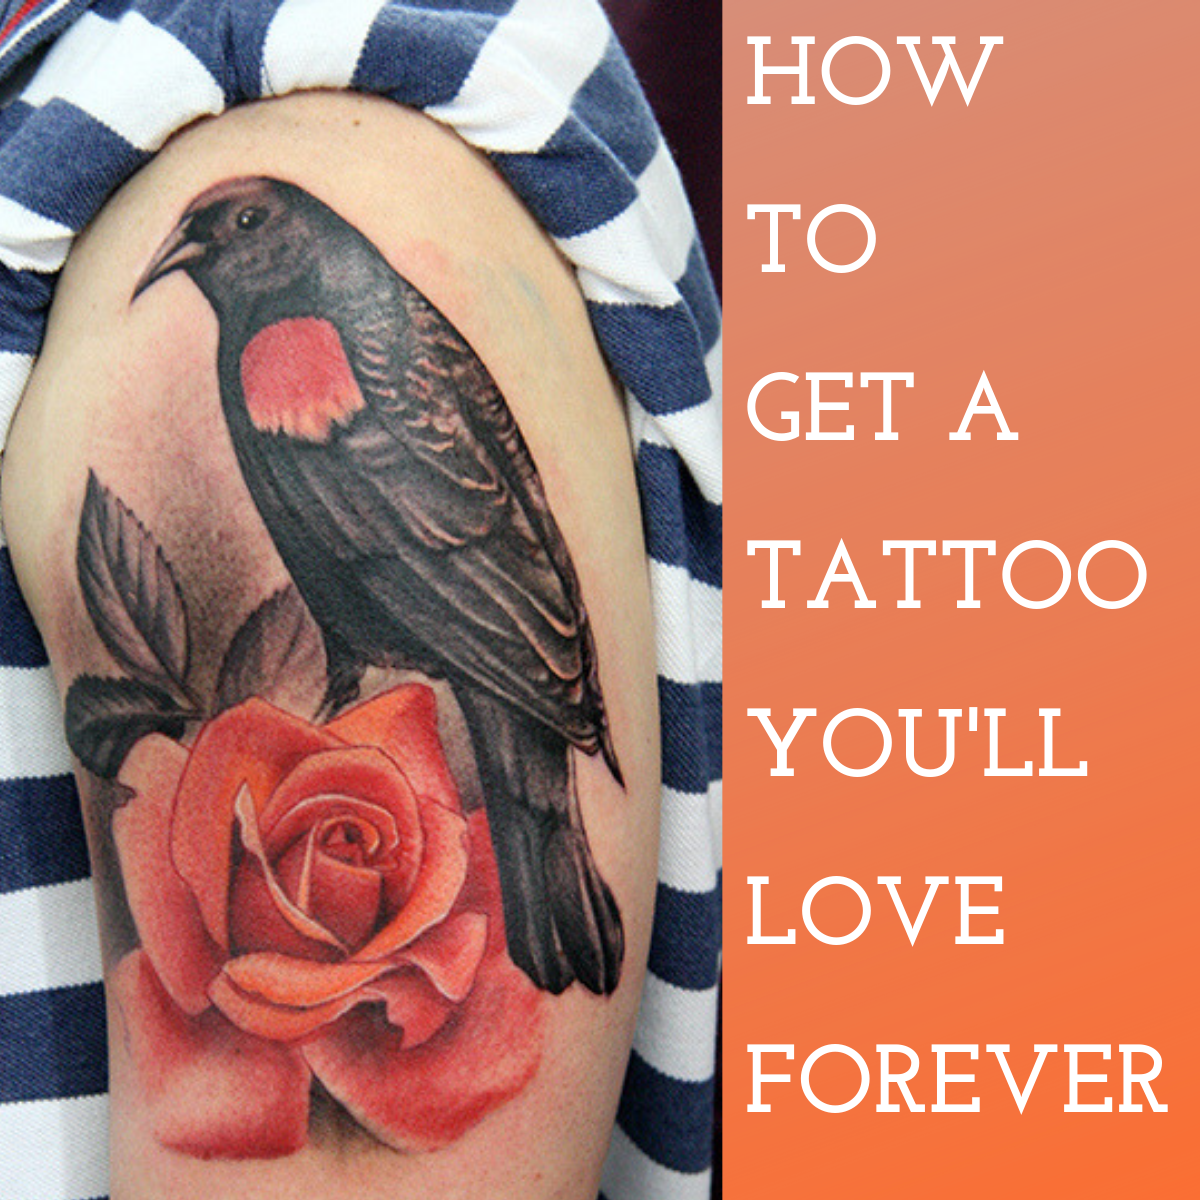 0a3e464816 A Tattoo Artist's Tips for Getting a Tattoo You'll Love Forever ...